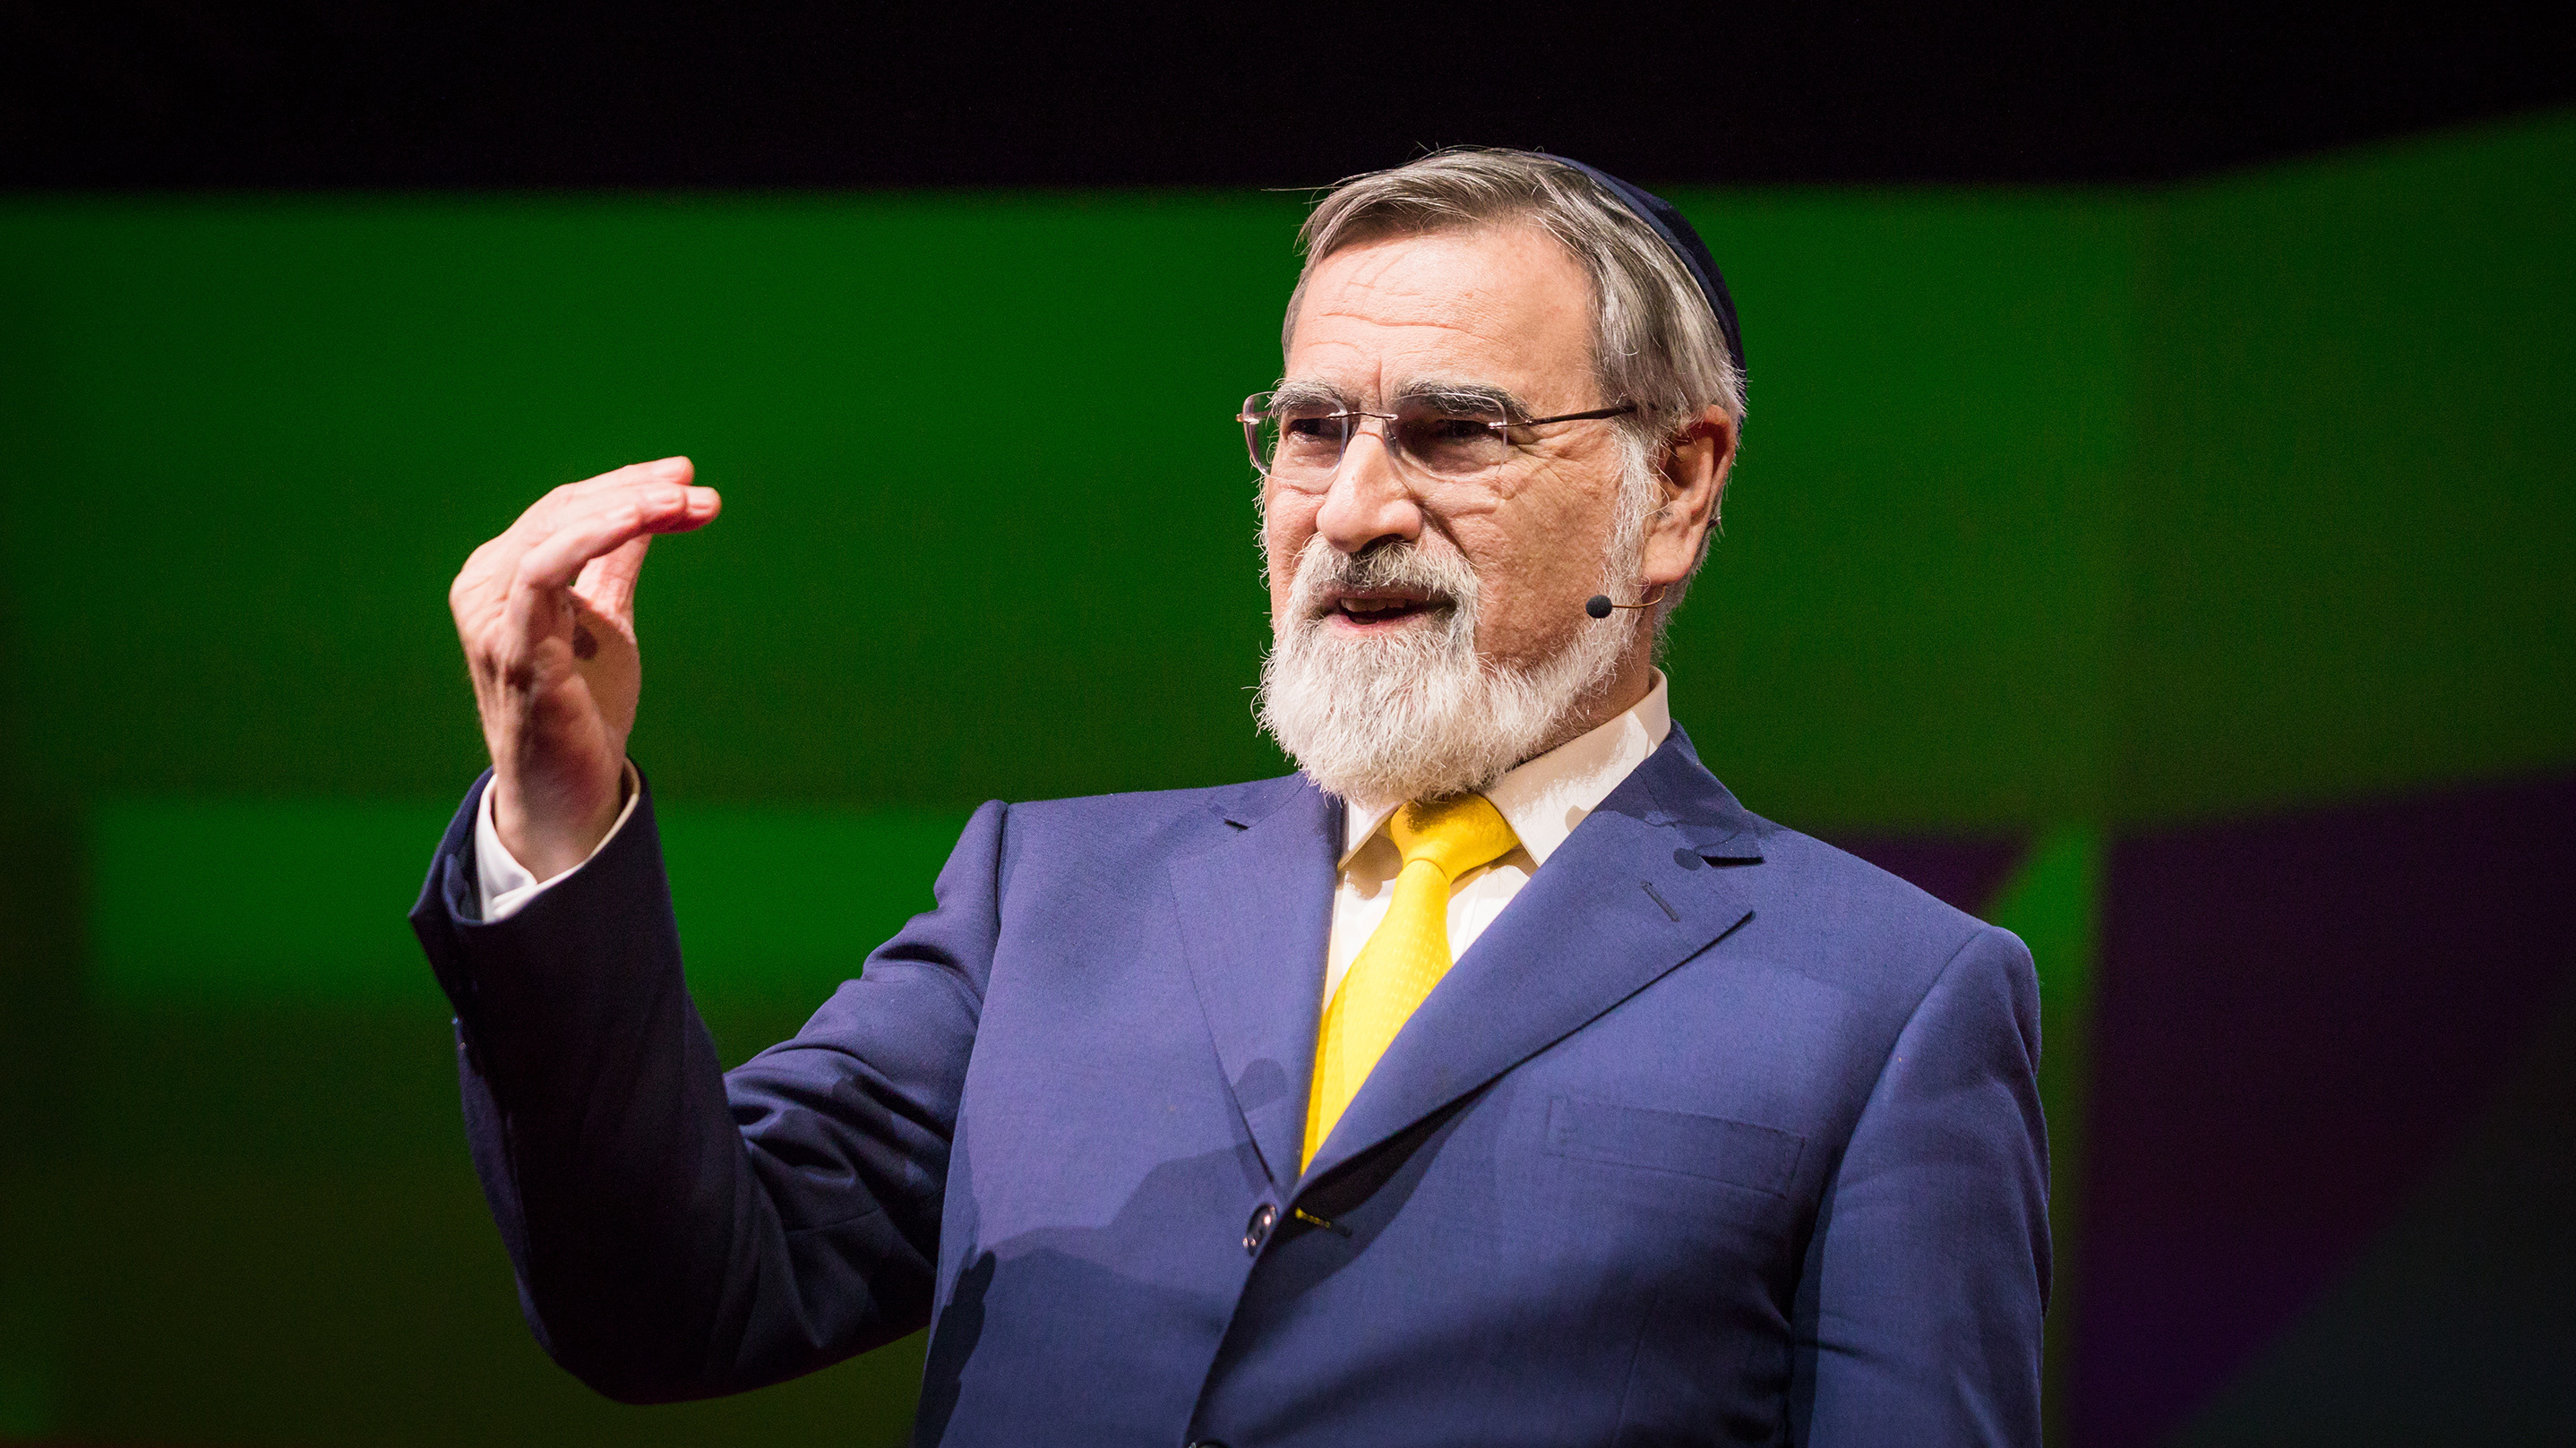 Image for Rabbi Jonathan Sacks: Does Our Future Depend On More Dialogue? Article